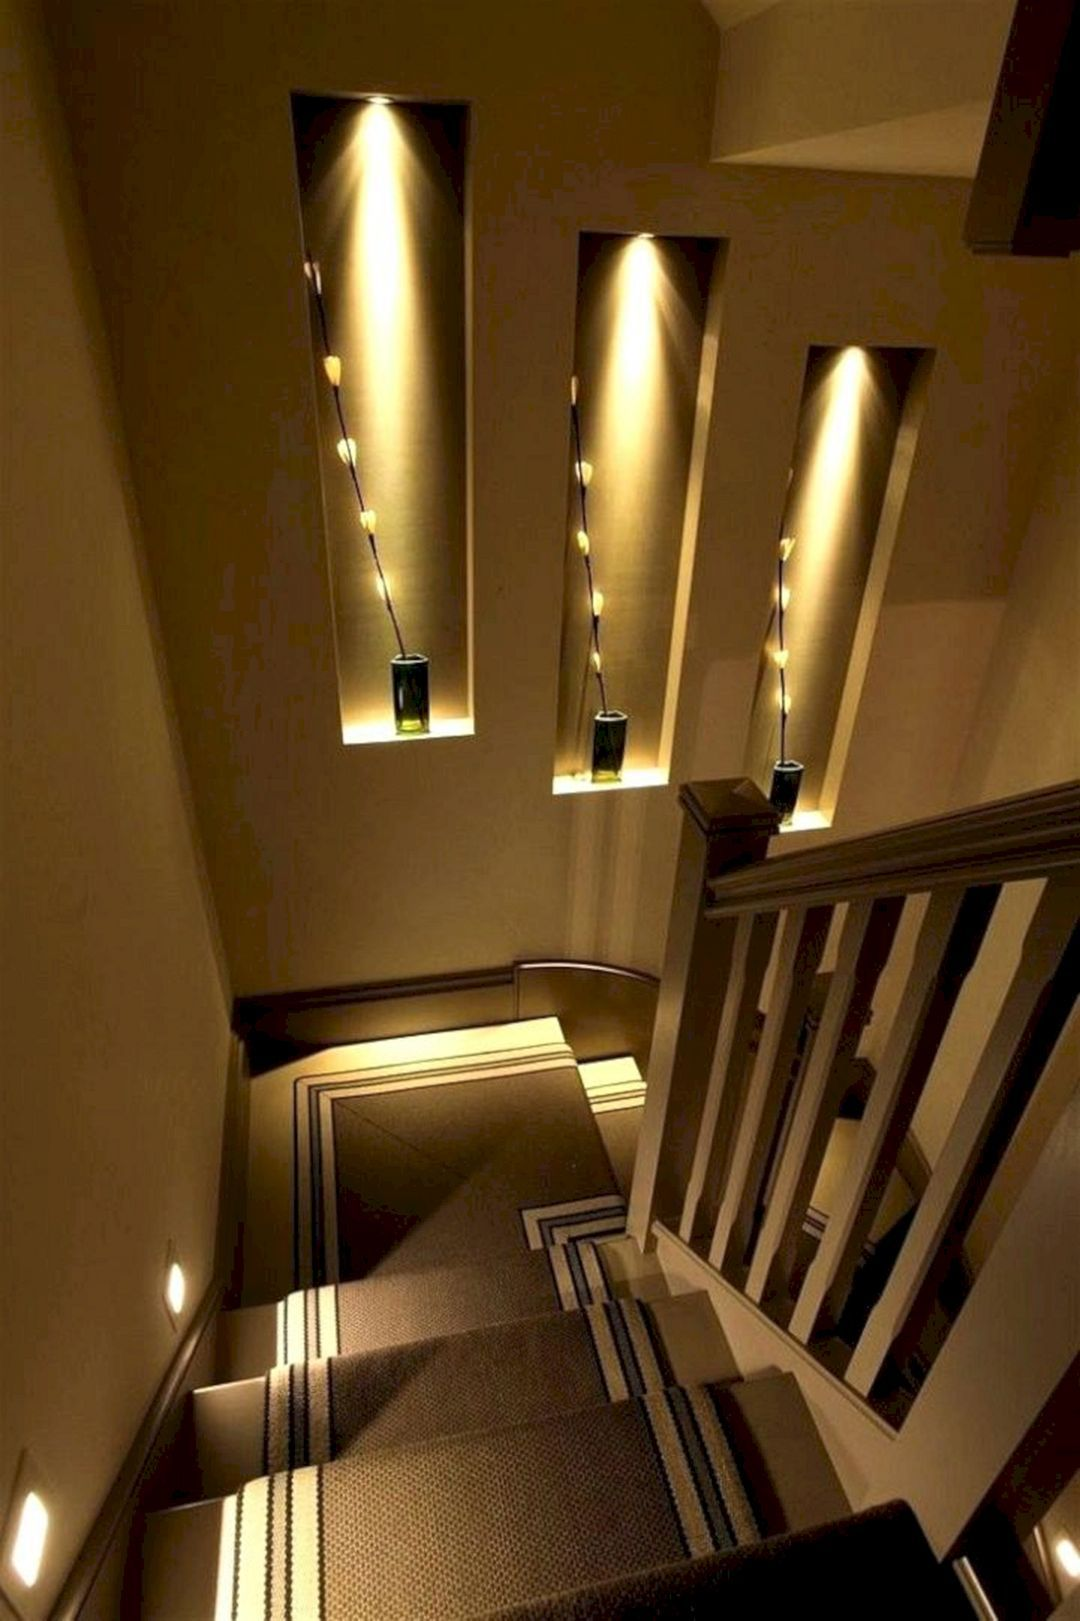 18 Decorative Lighting Ideas For Amazing Home Design That